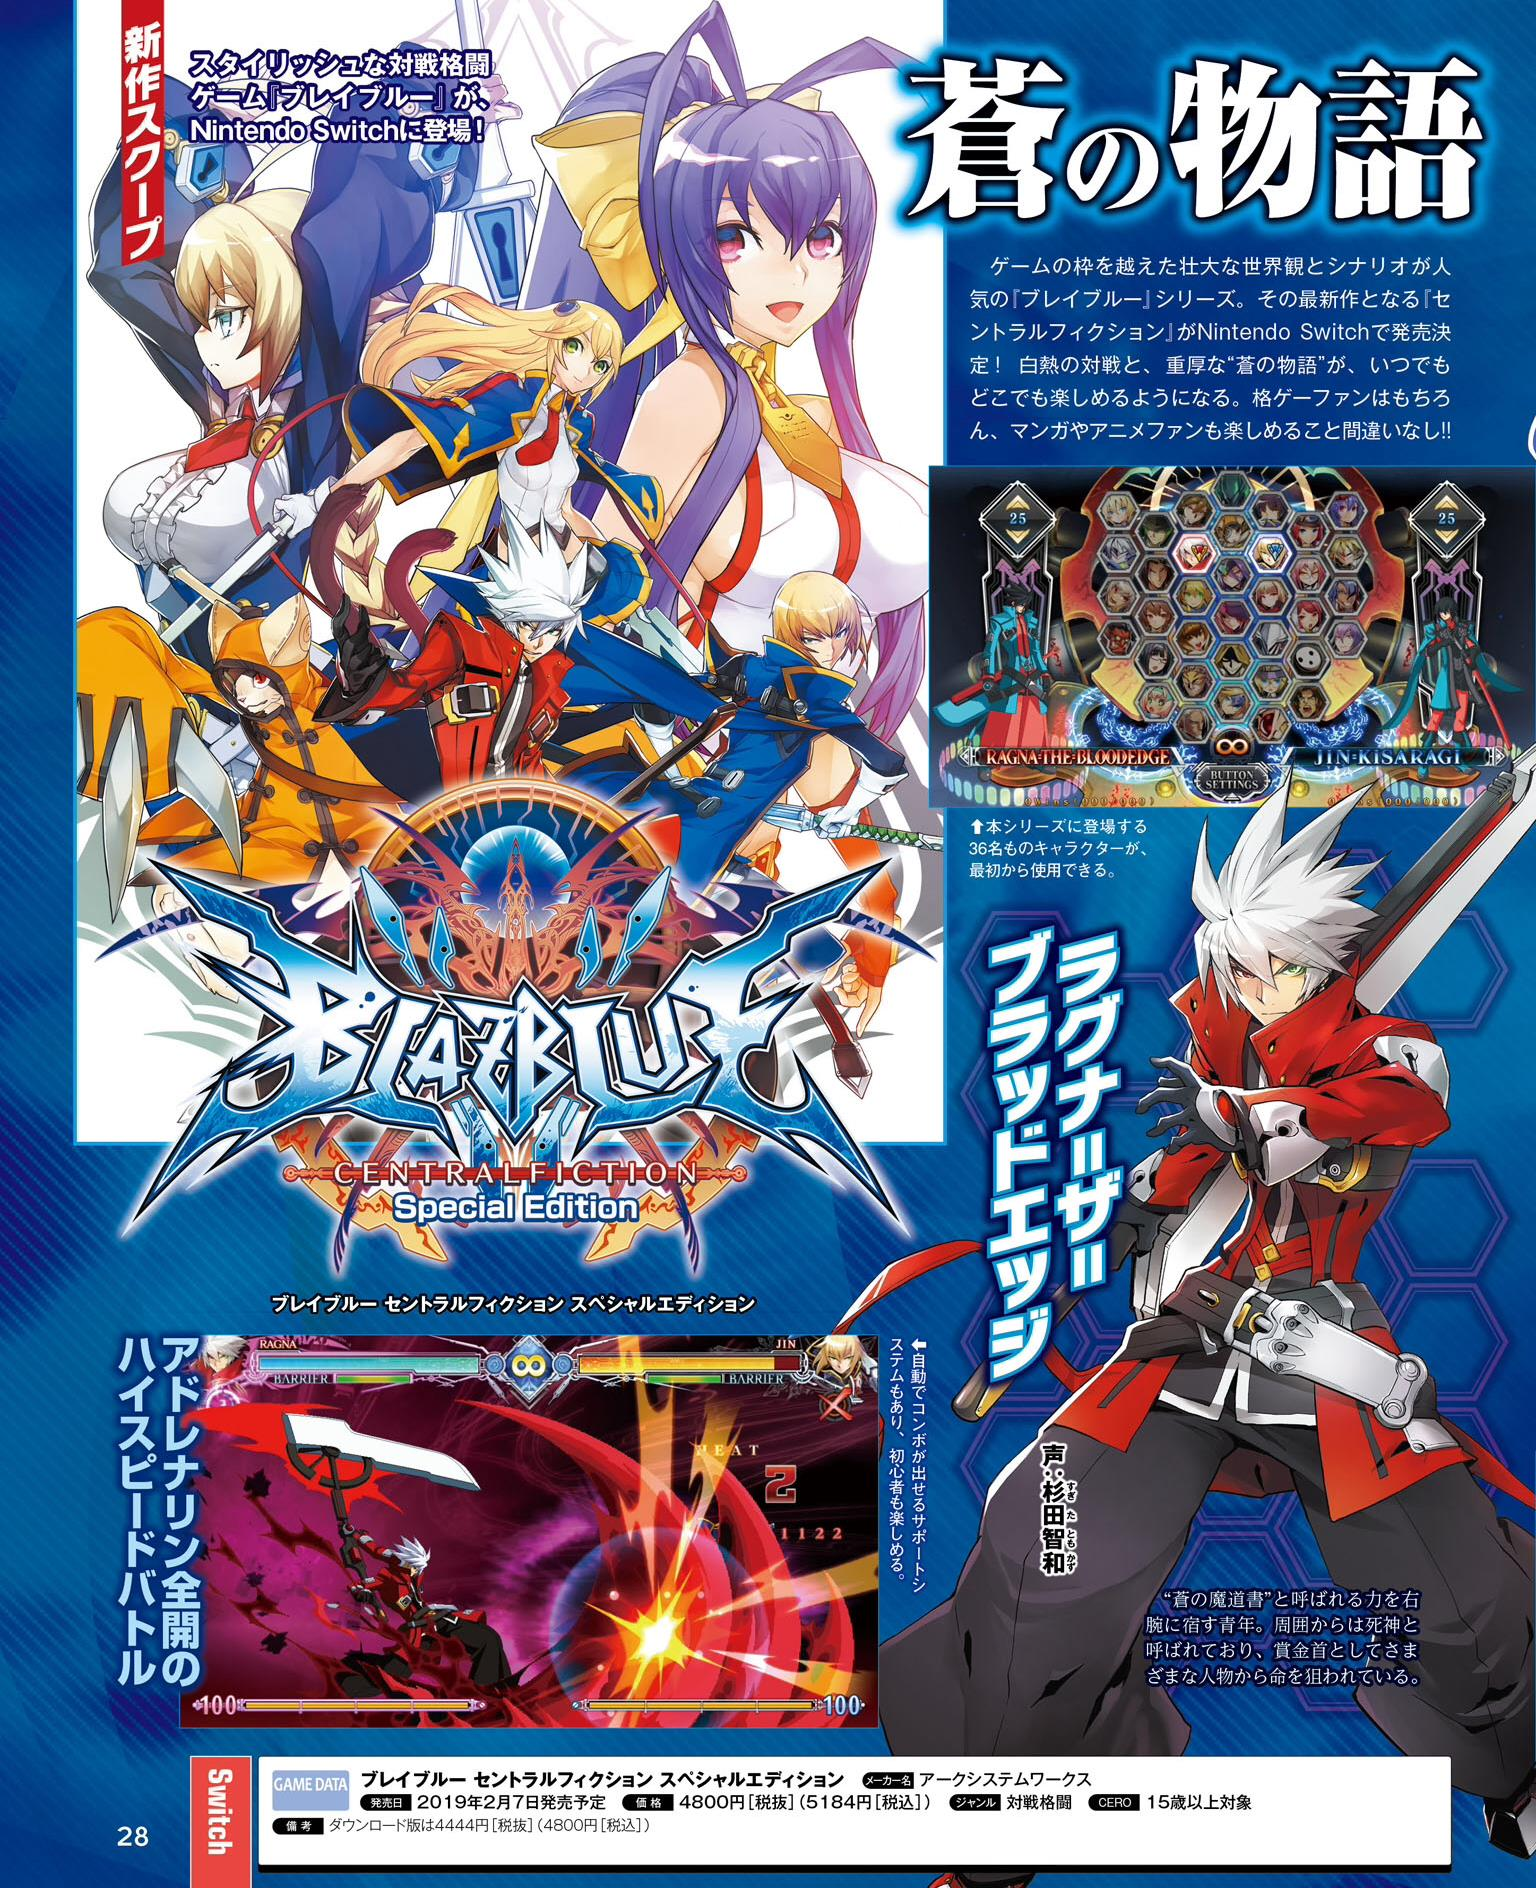 Scans roundup - BlazBlue: Central Fiction Special Edition